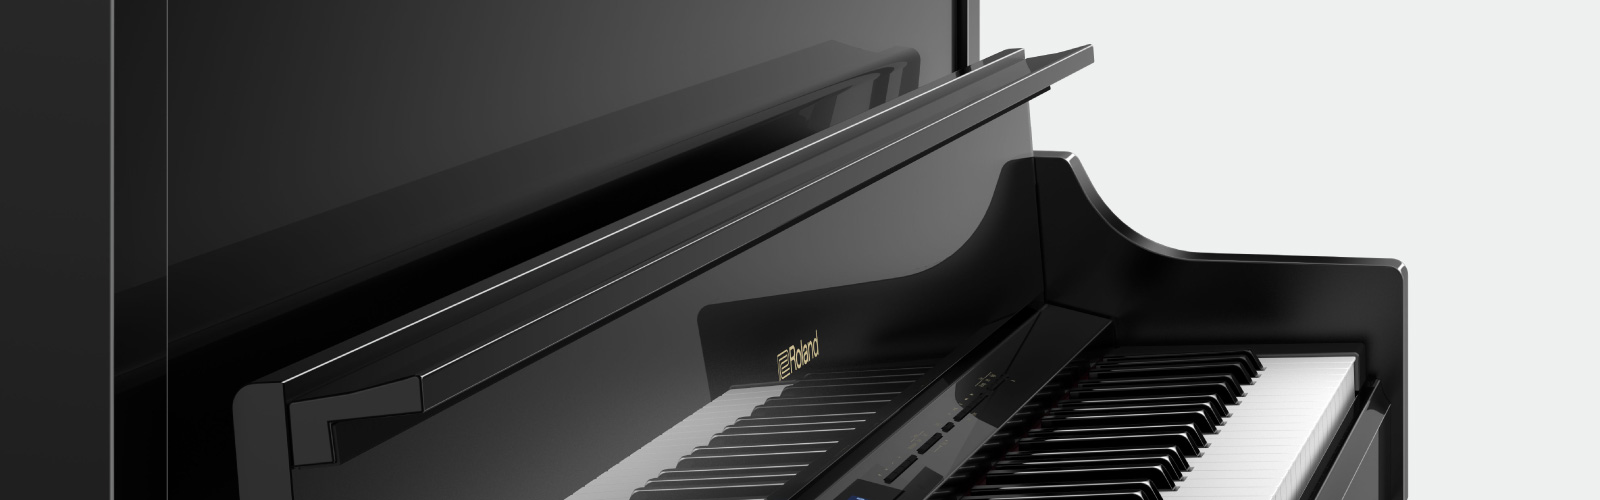 Premium Upright Pianos